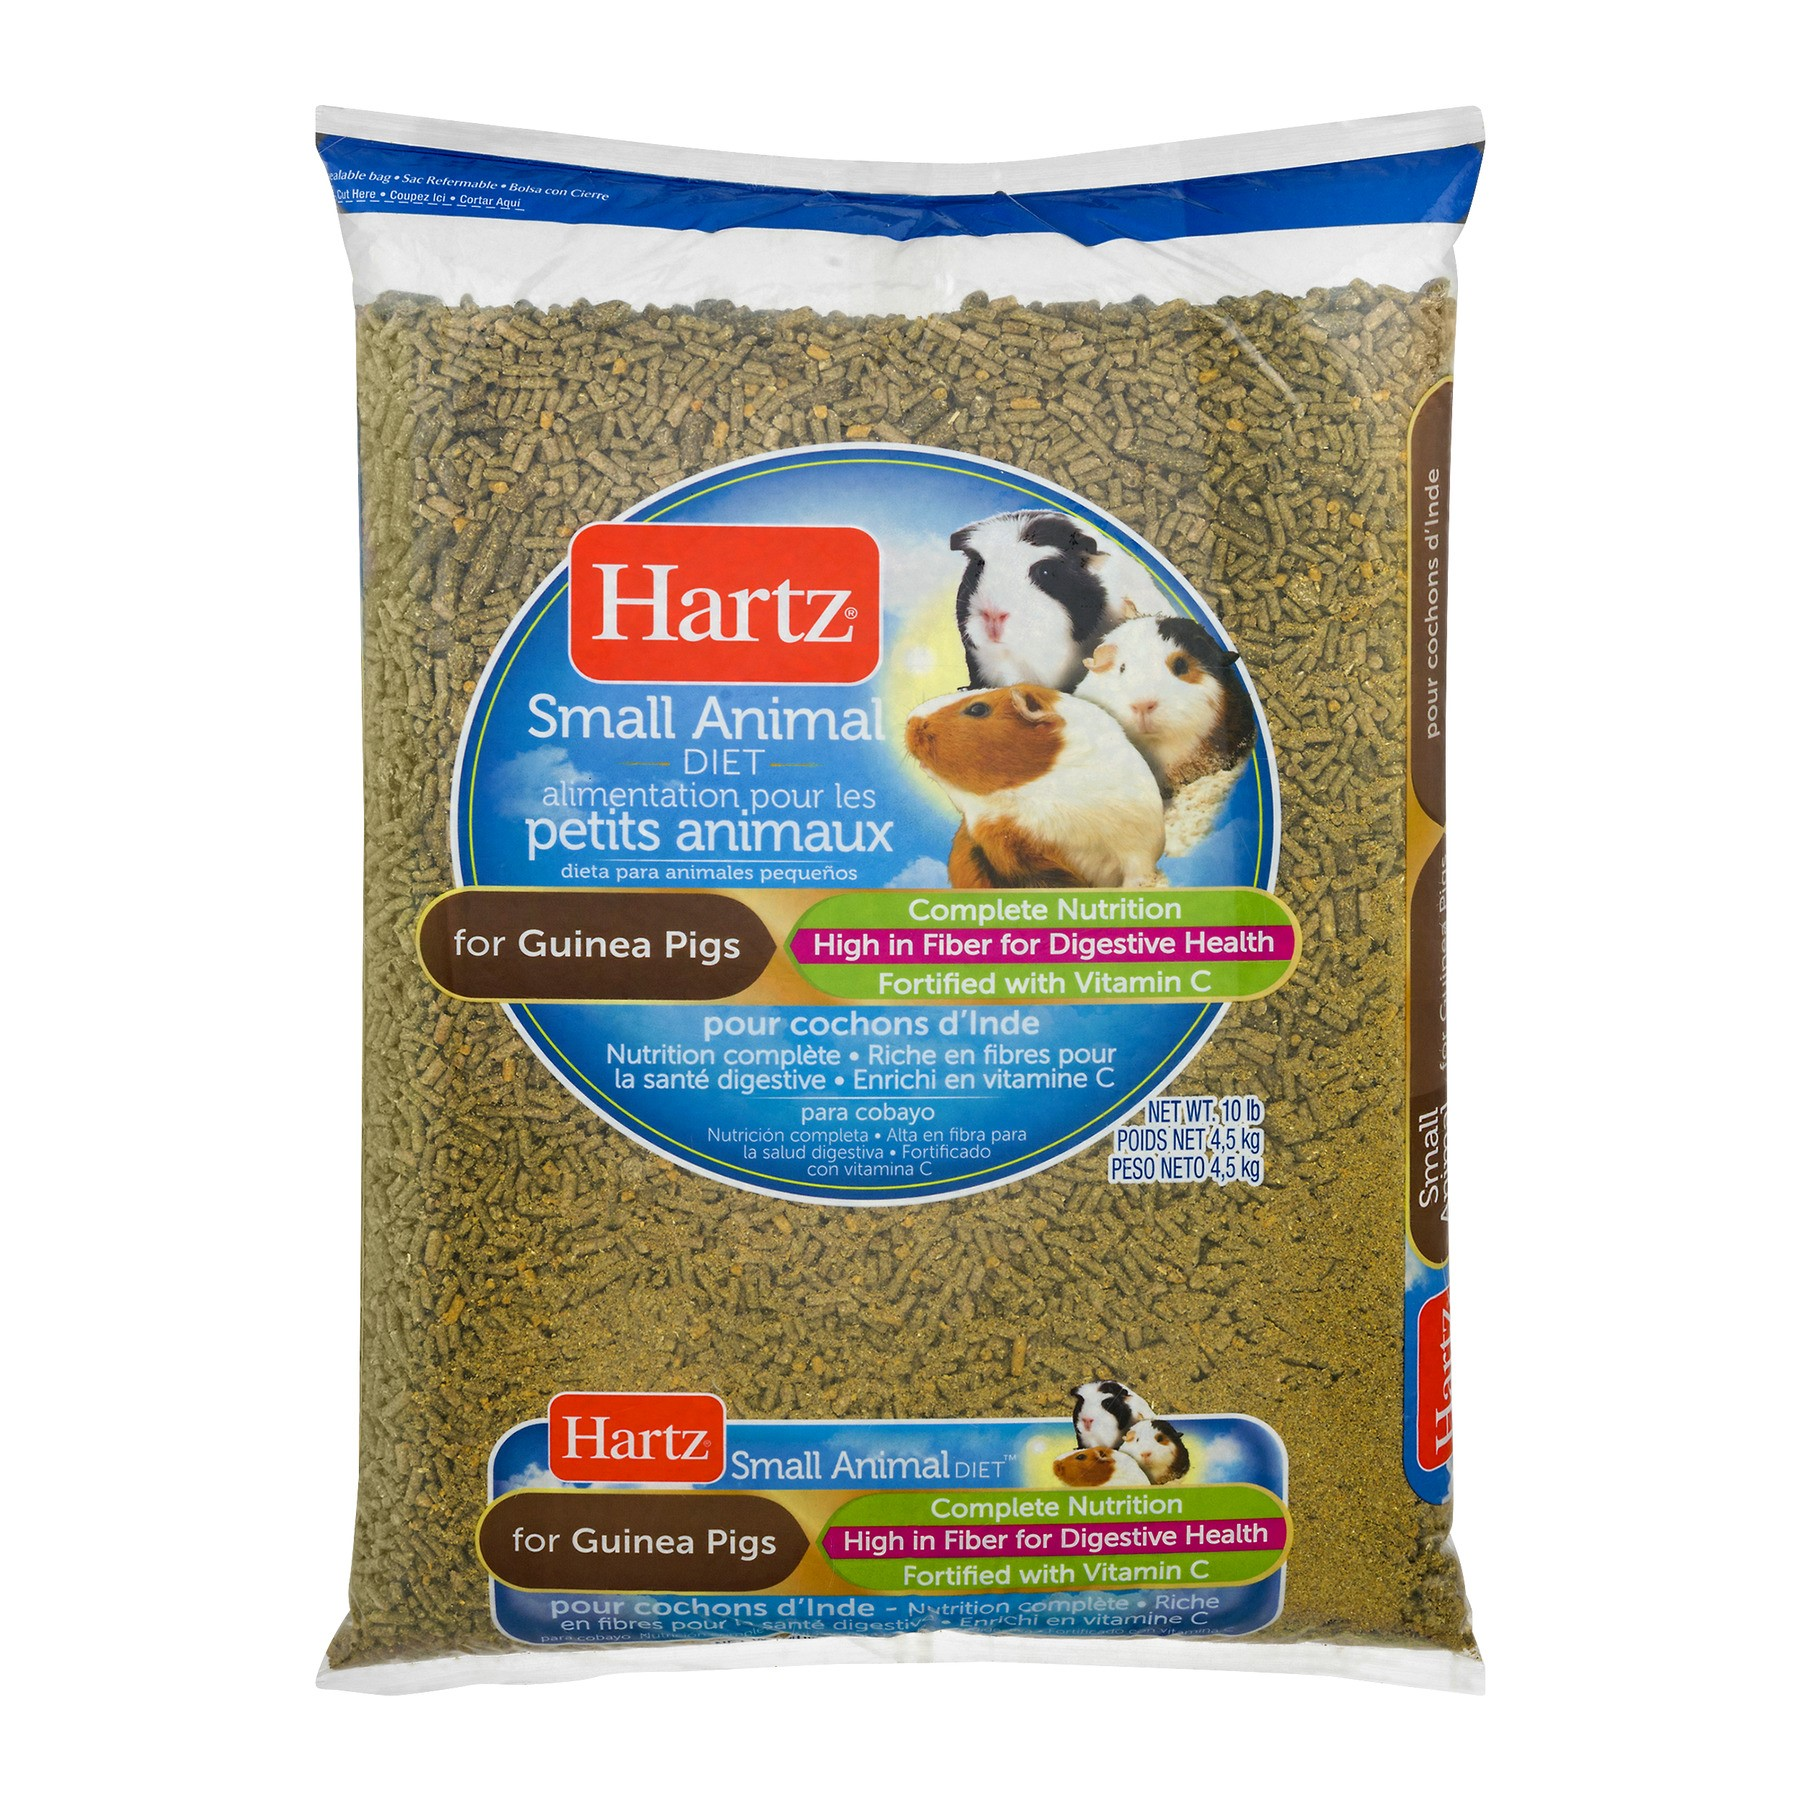 Hartz Small Animal Diet for Guinea Pigs, 10.0 LB